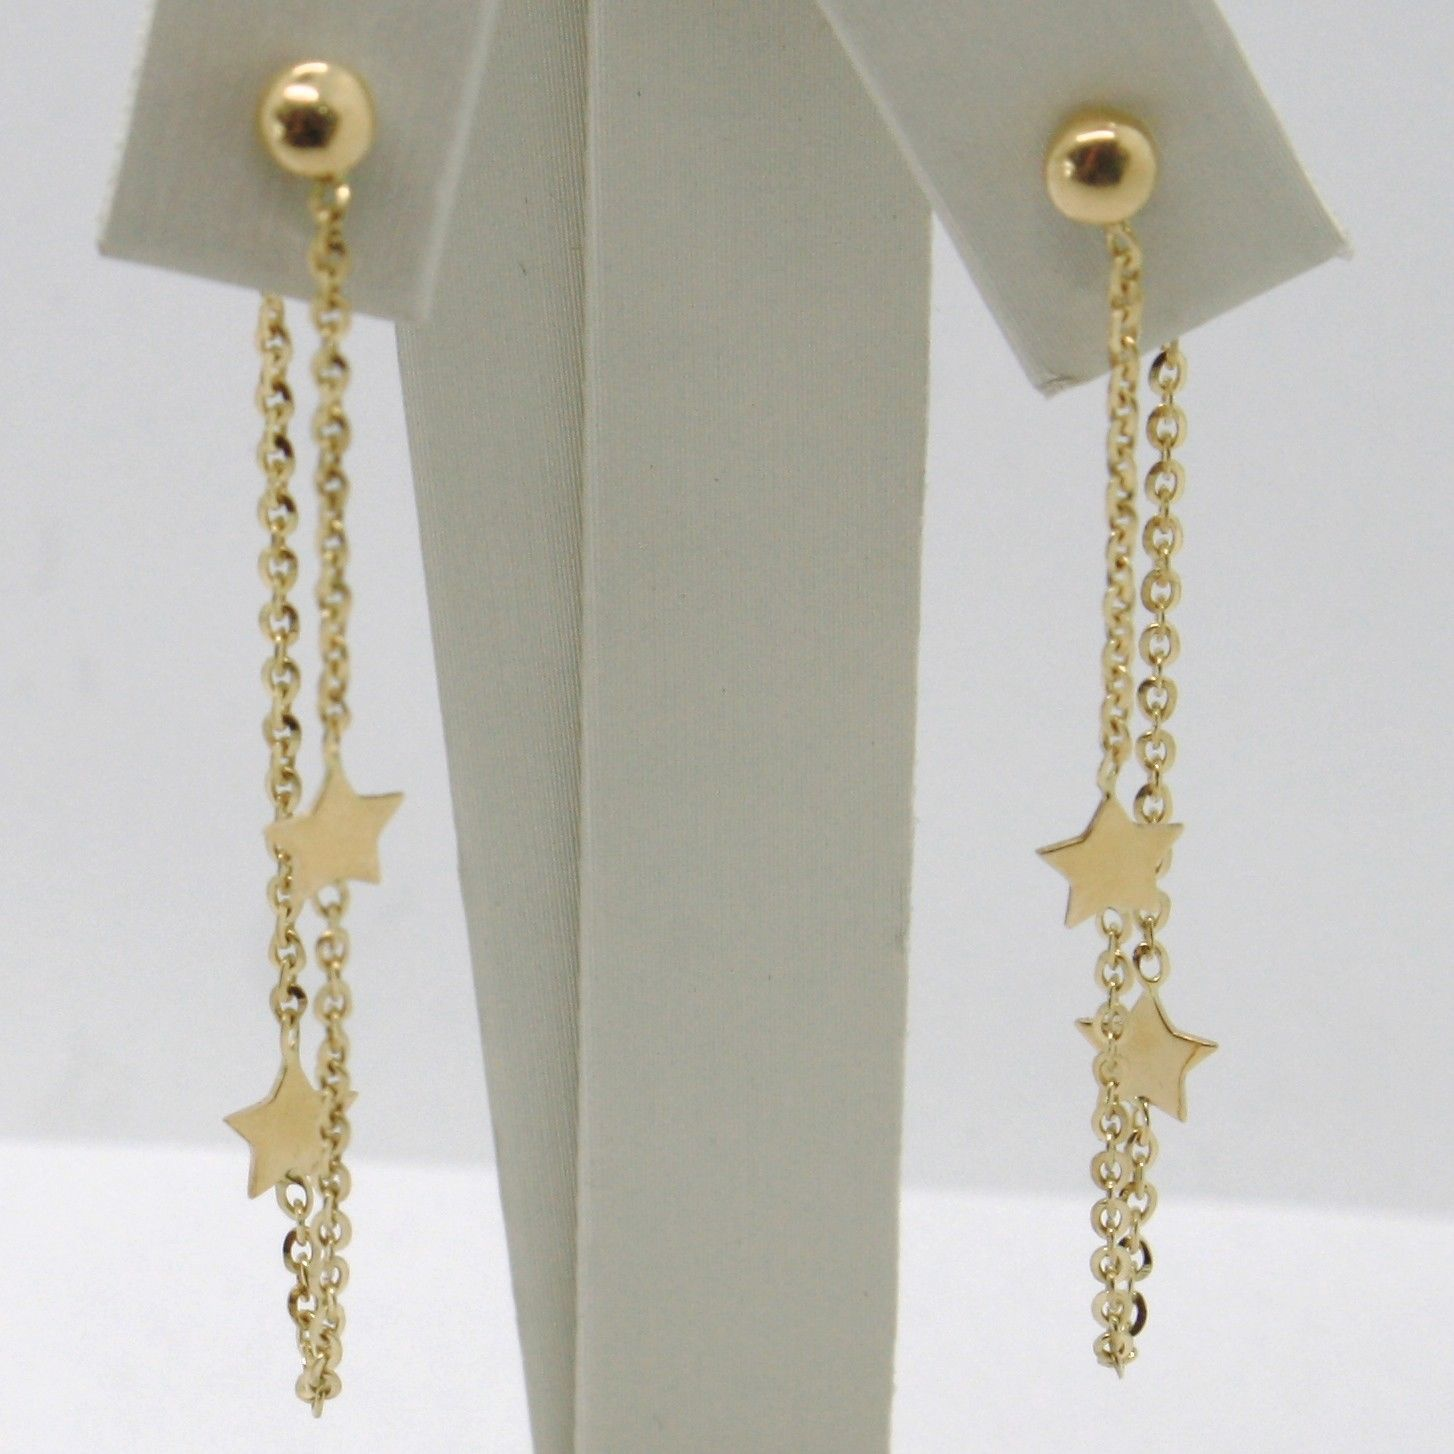 18K YELLOW GOLD PENDANT EARRINGS, ROLO CHAIN UNDER THE EARLOBE, DOUBLE STAR